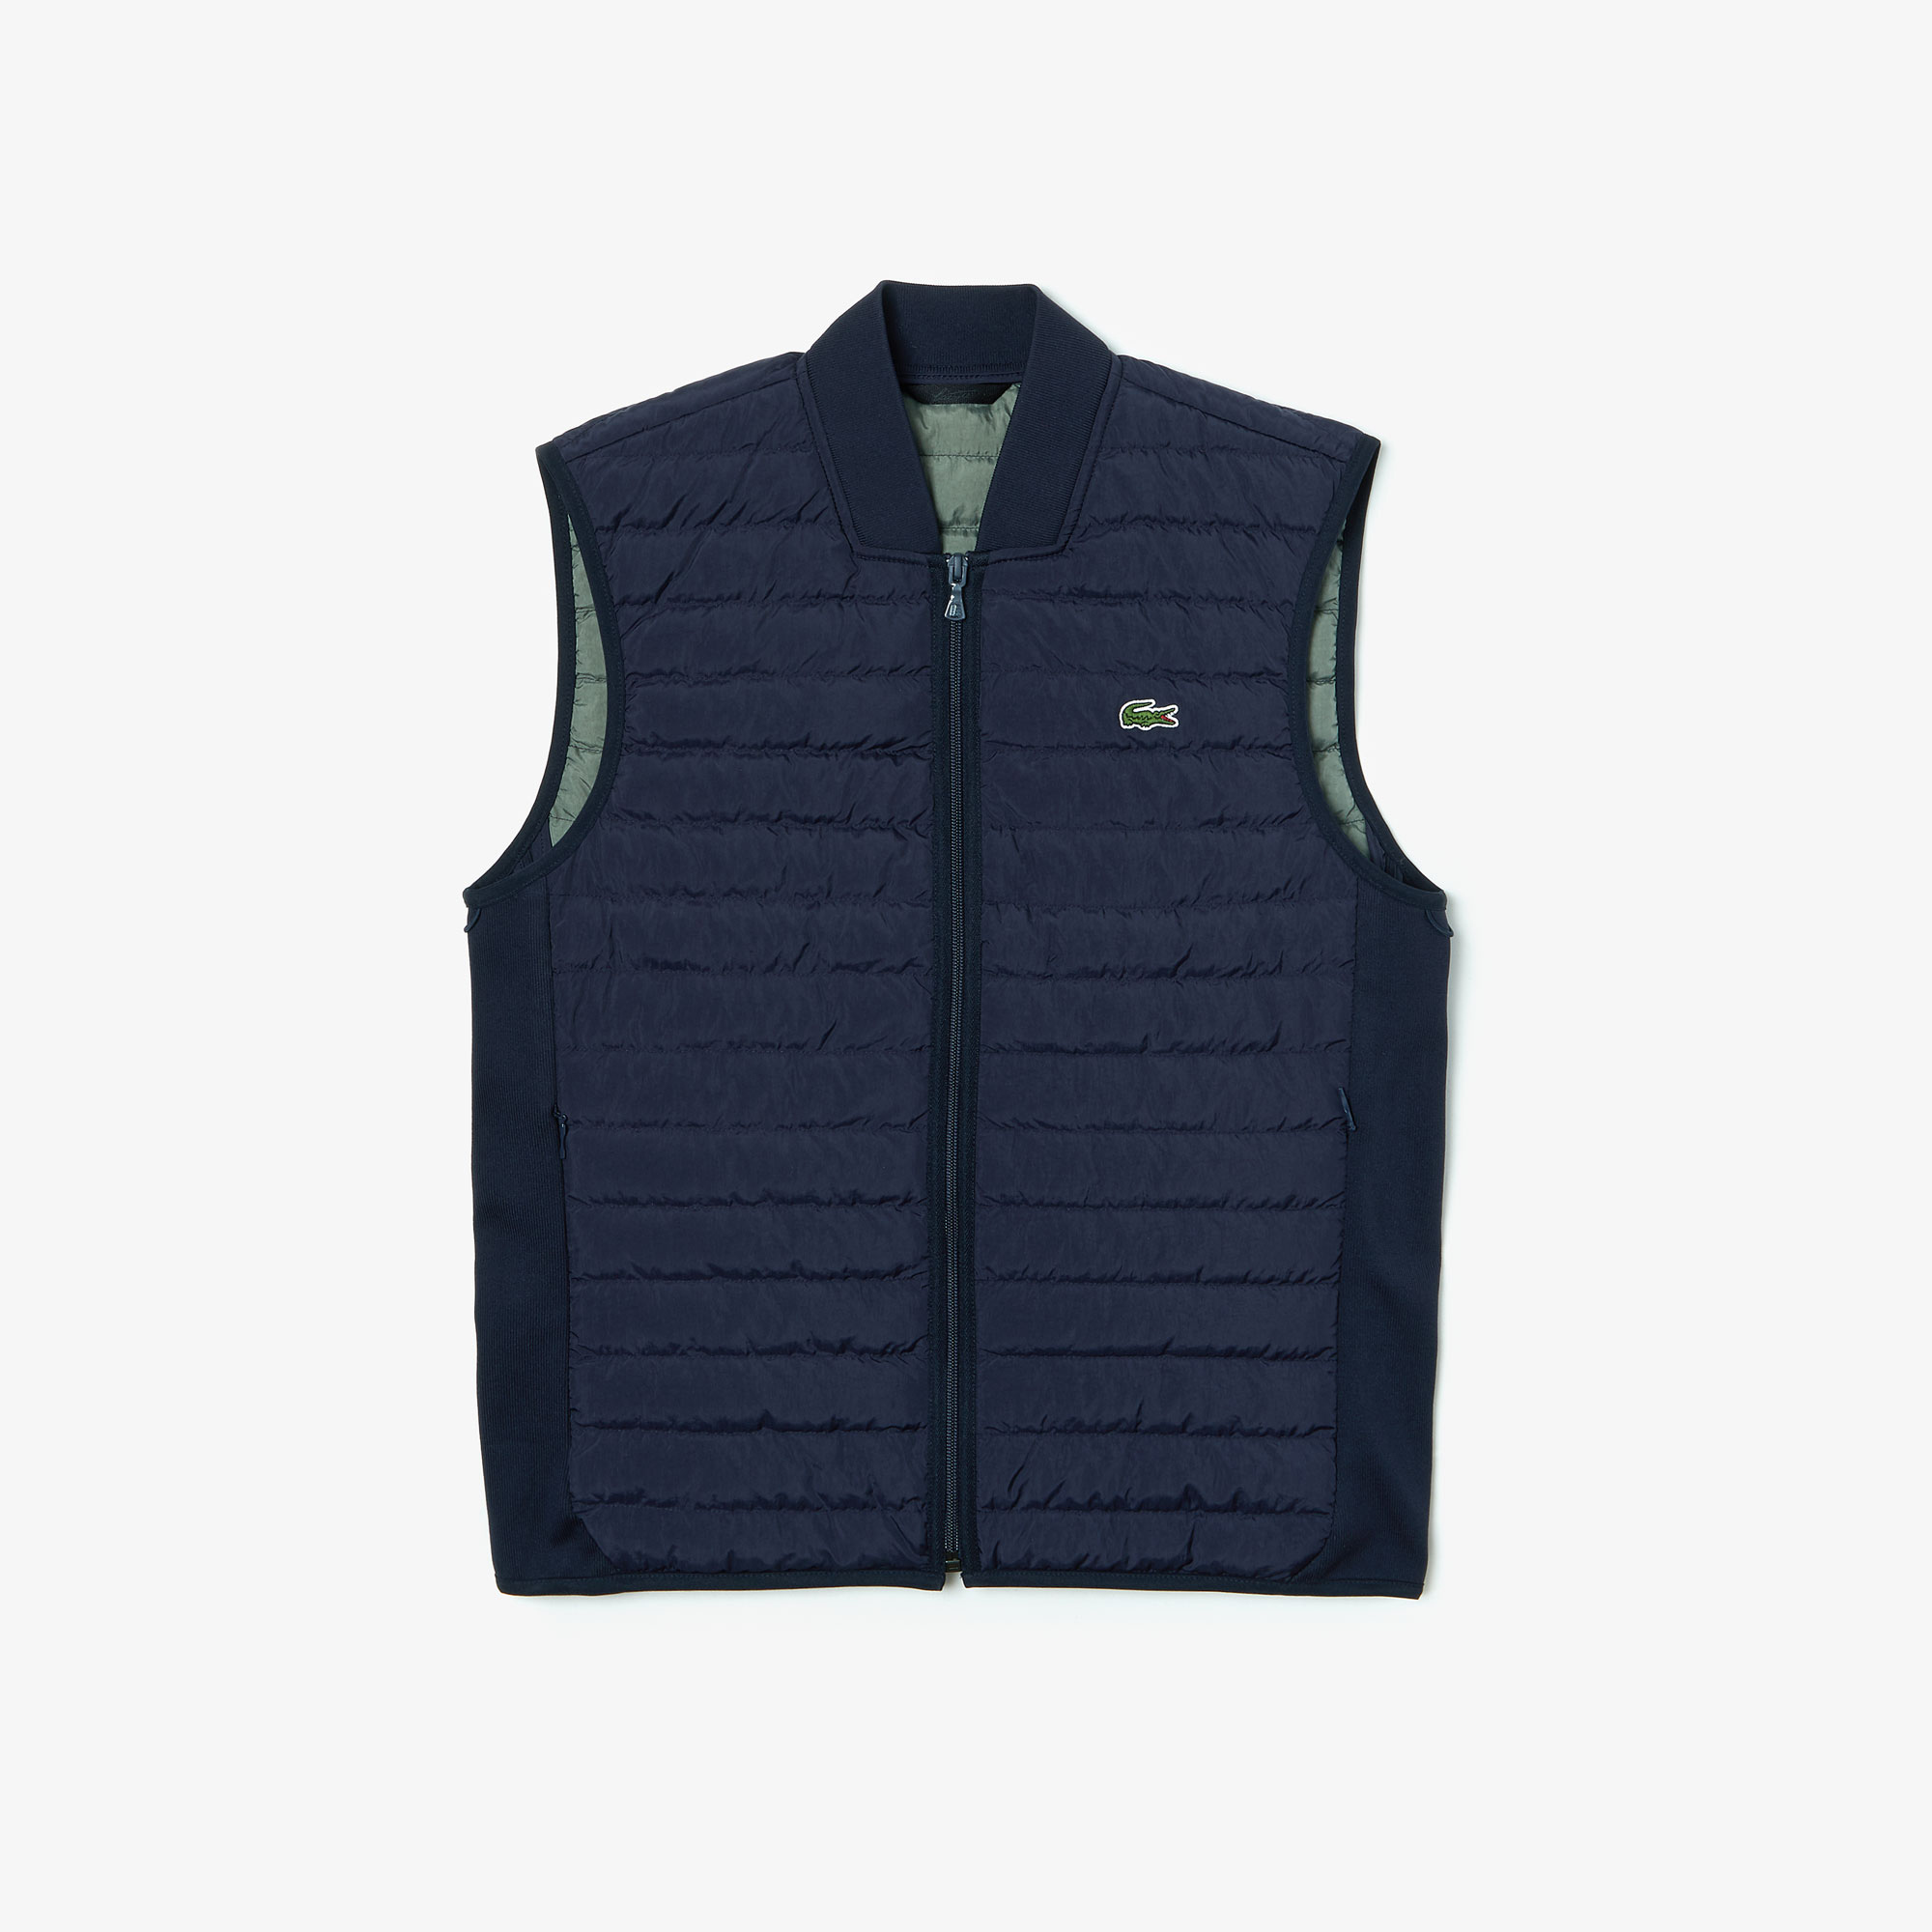 Lacoste Men's Combinable Collapsible Lightweight Quilted Zip Vest